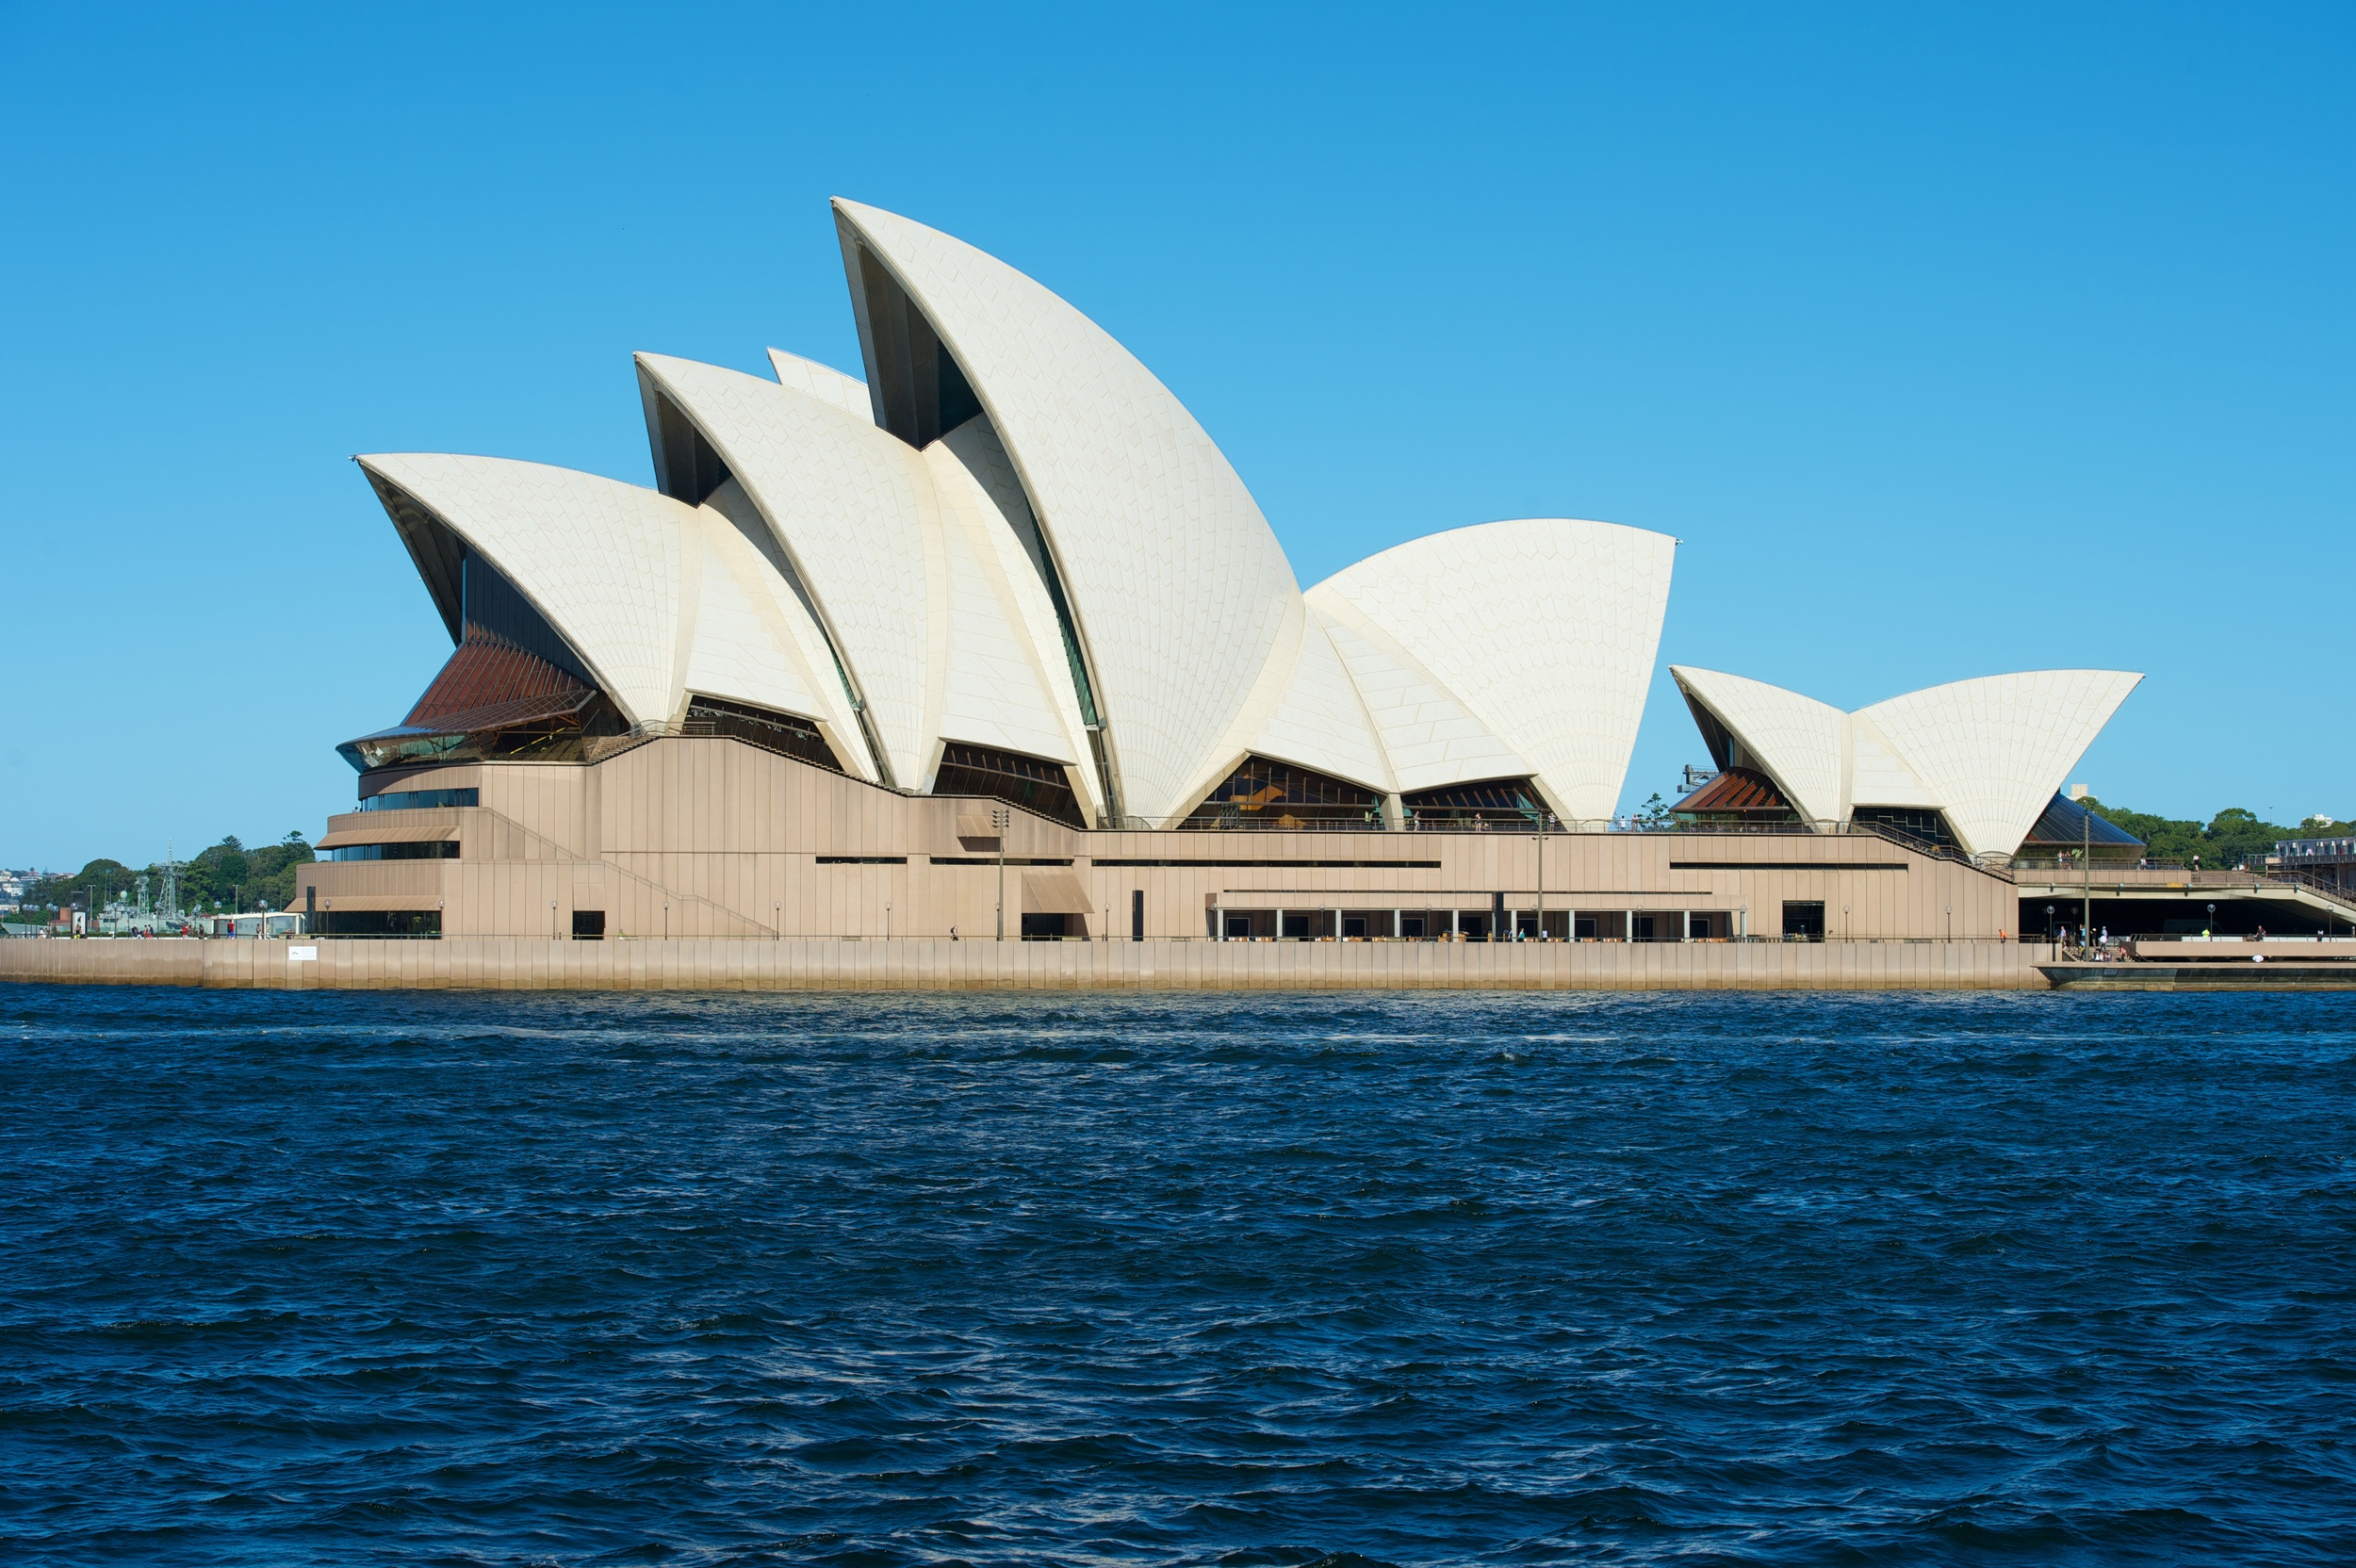 The Opera House, taken from an afternoon trip by boat to Manly Beach. Real tourists for a day!